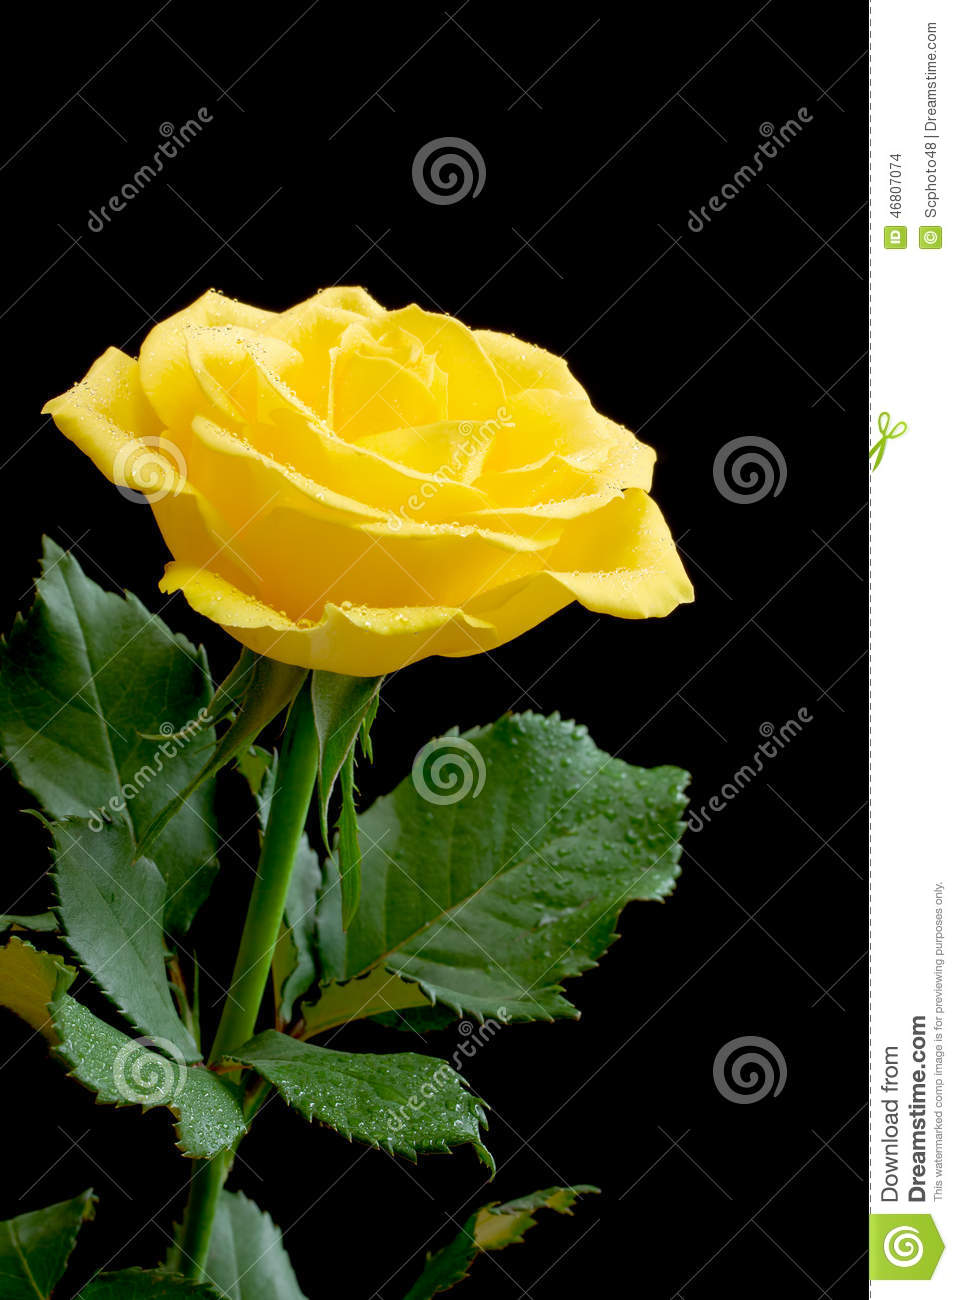 Beautiful Yellow Rose On Black Stock Photo - Image: 46807074